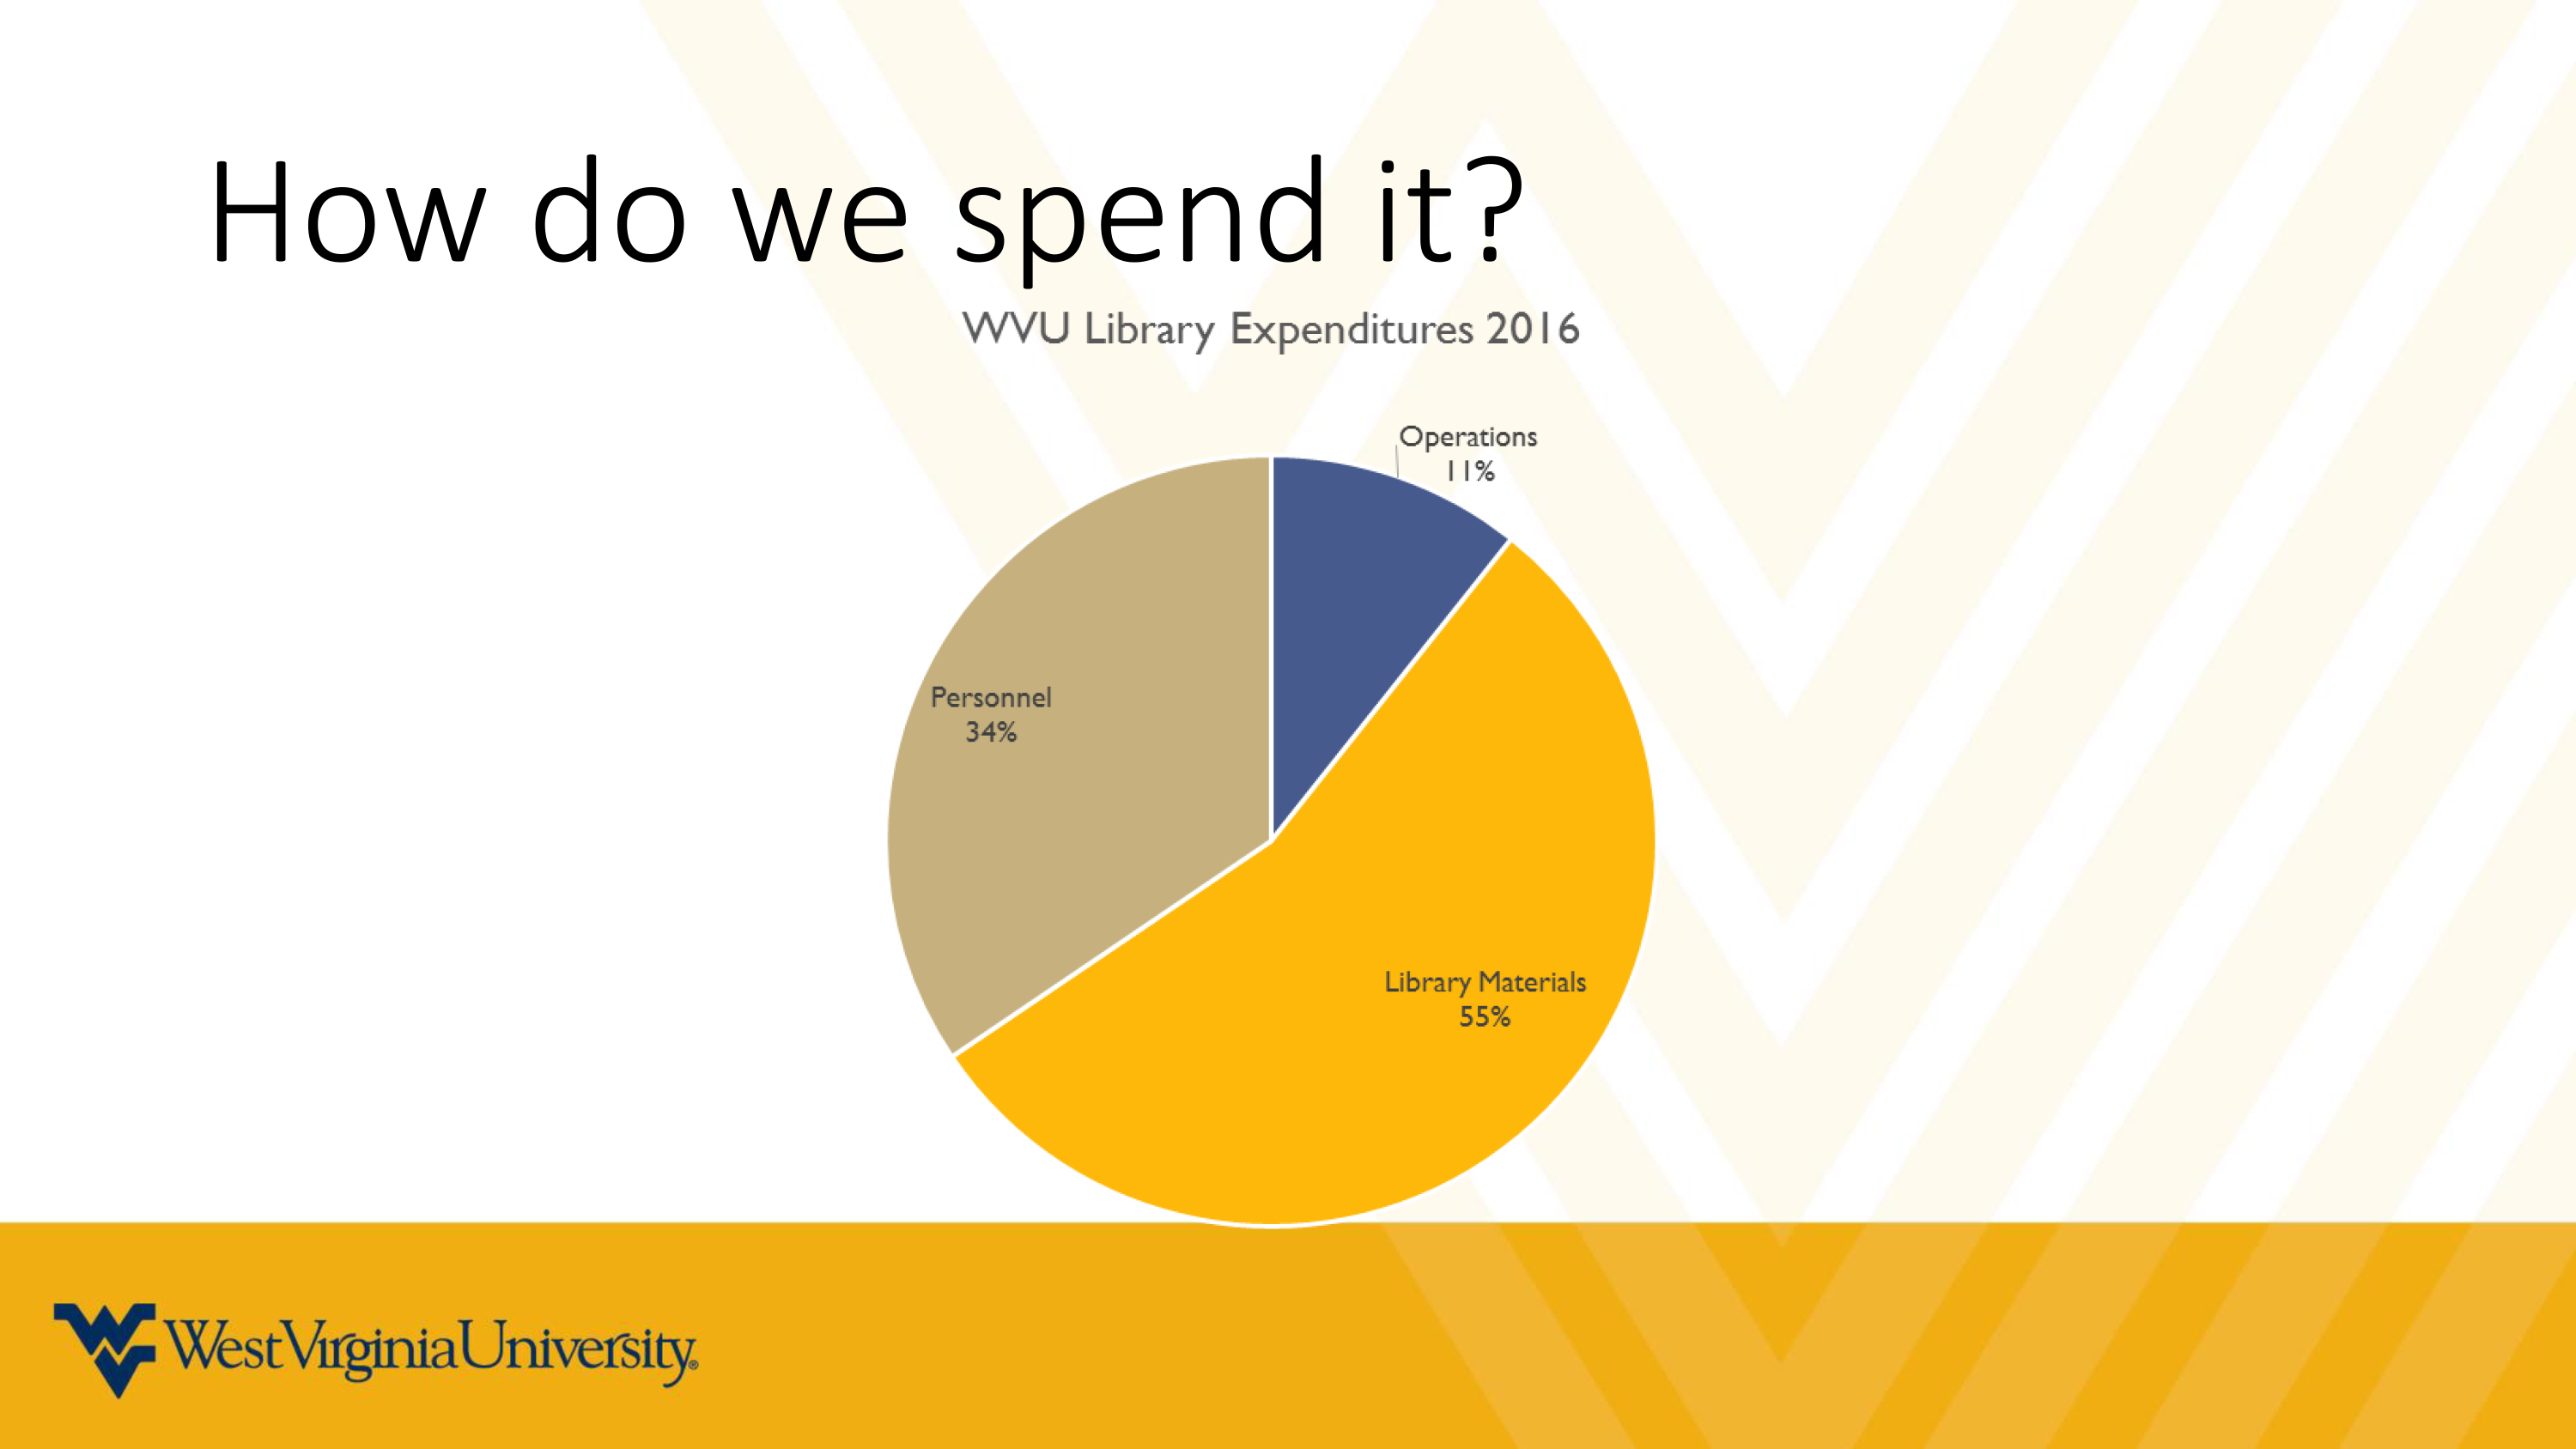 How we spend out money in pie chart format